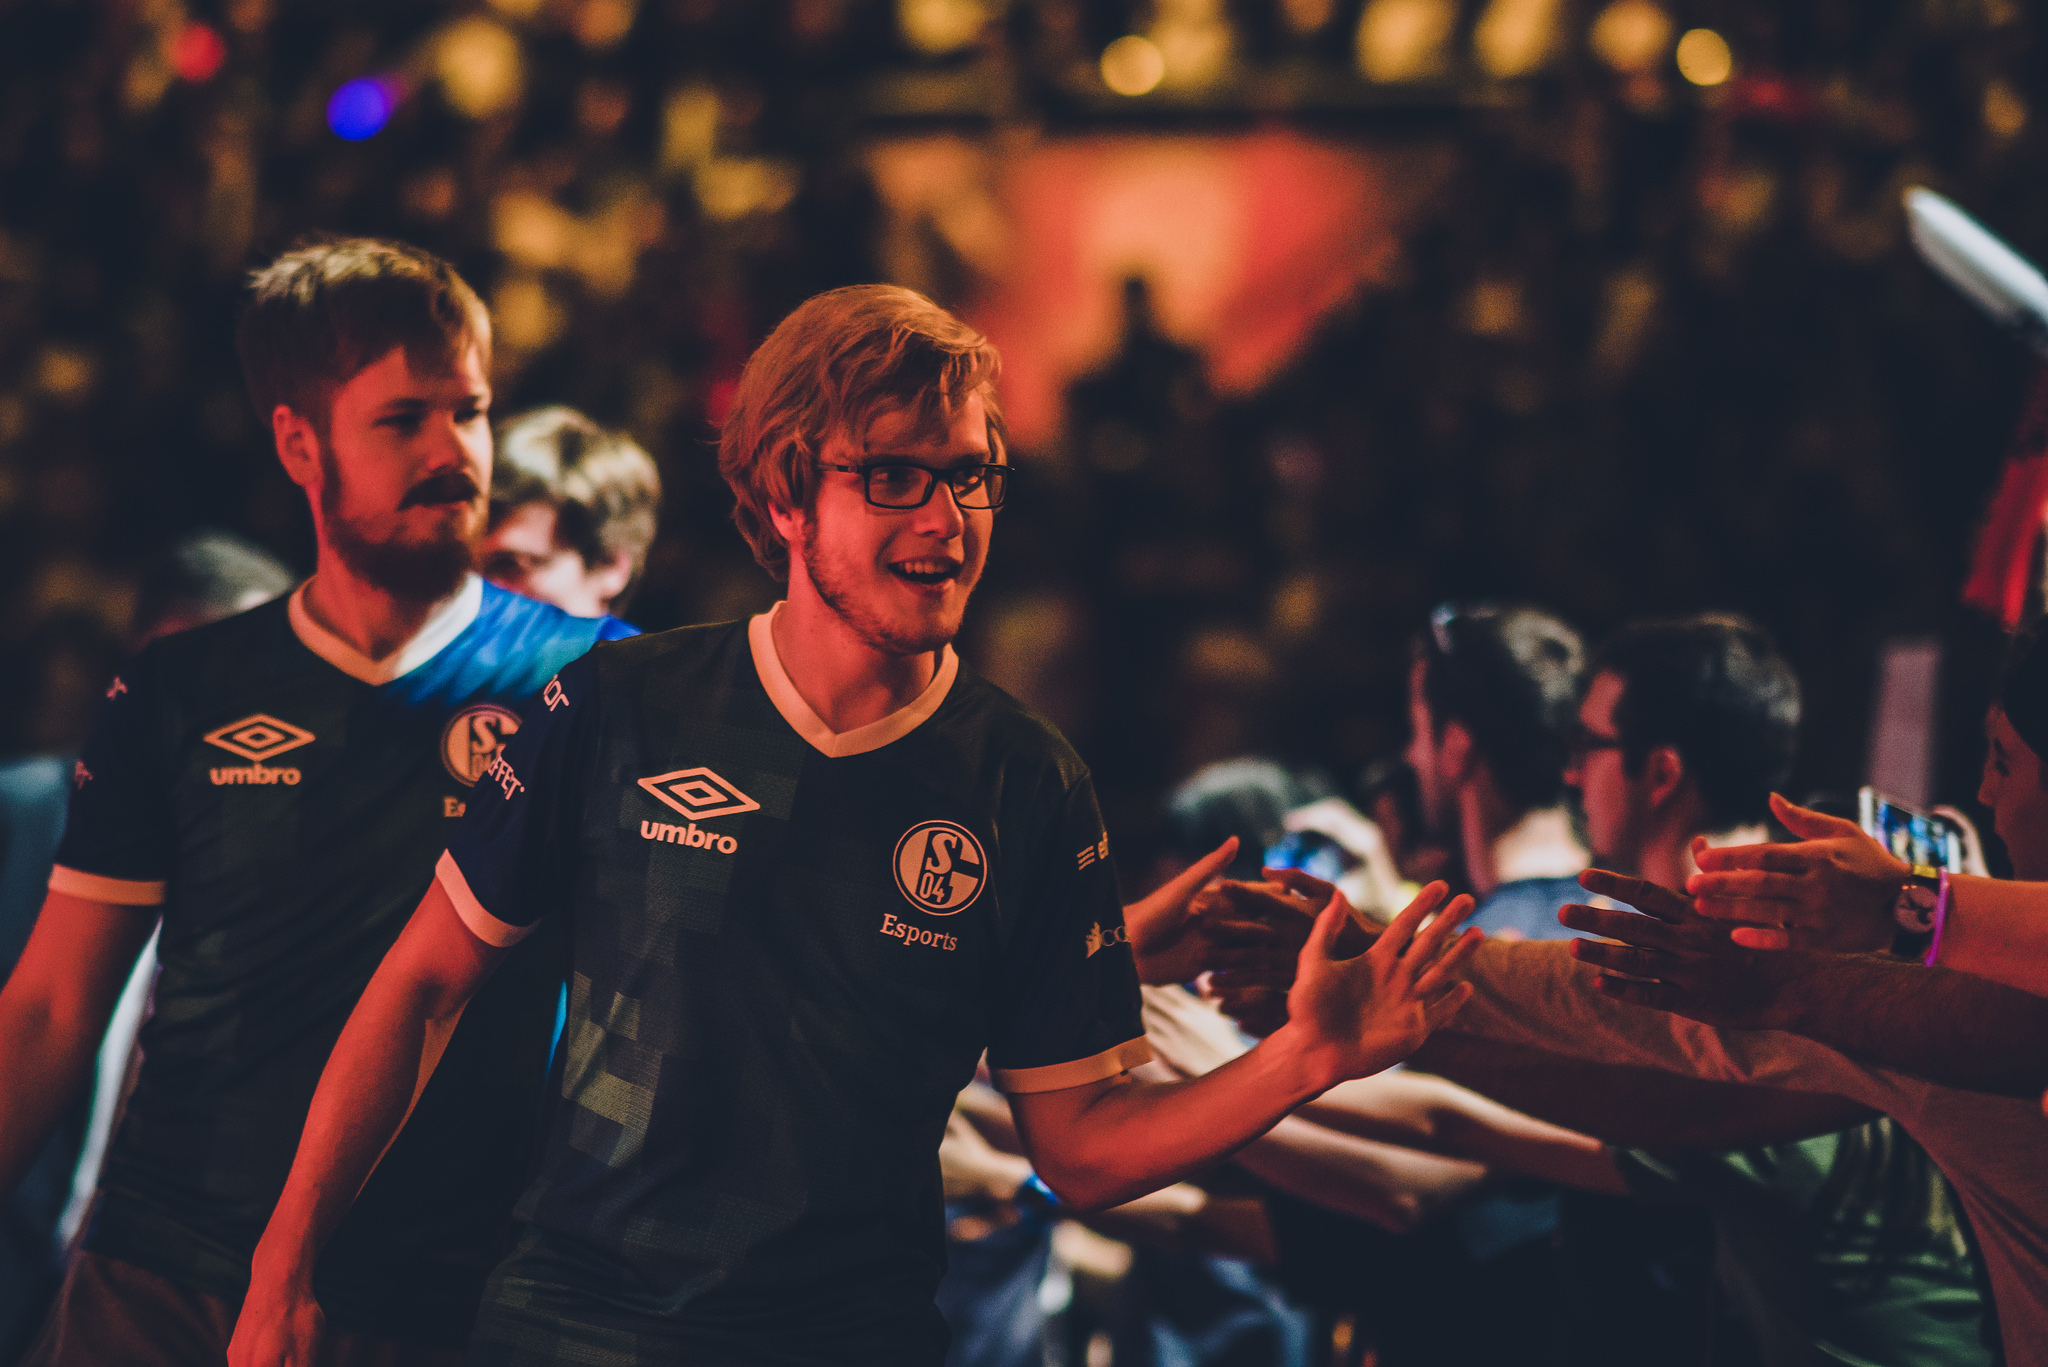 The EU LCS is rebranding to the League of Legends European